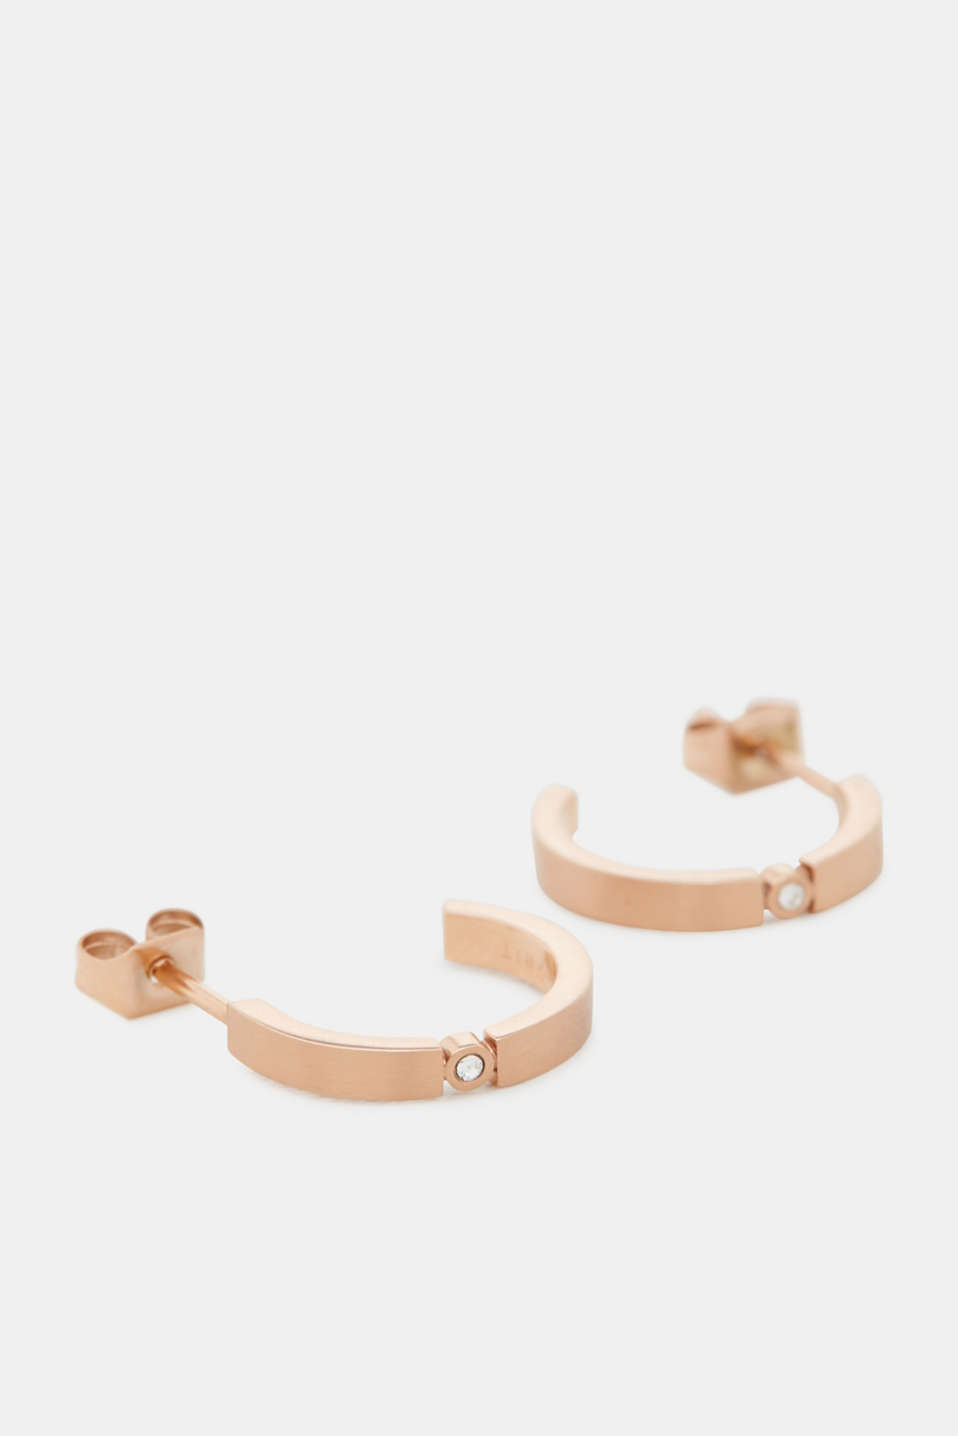 Esprit - Rose gold stud earrings with zirconia, made of stainless steel